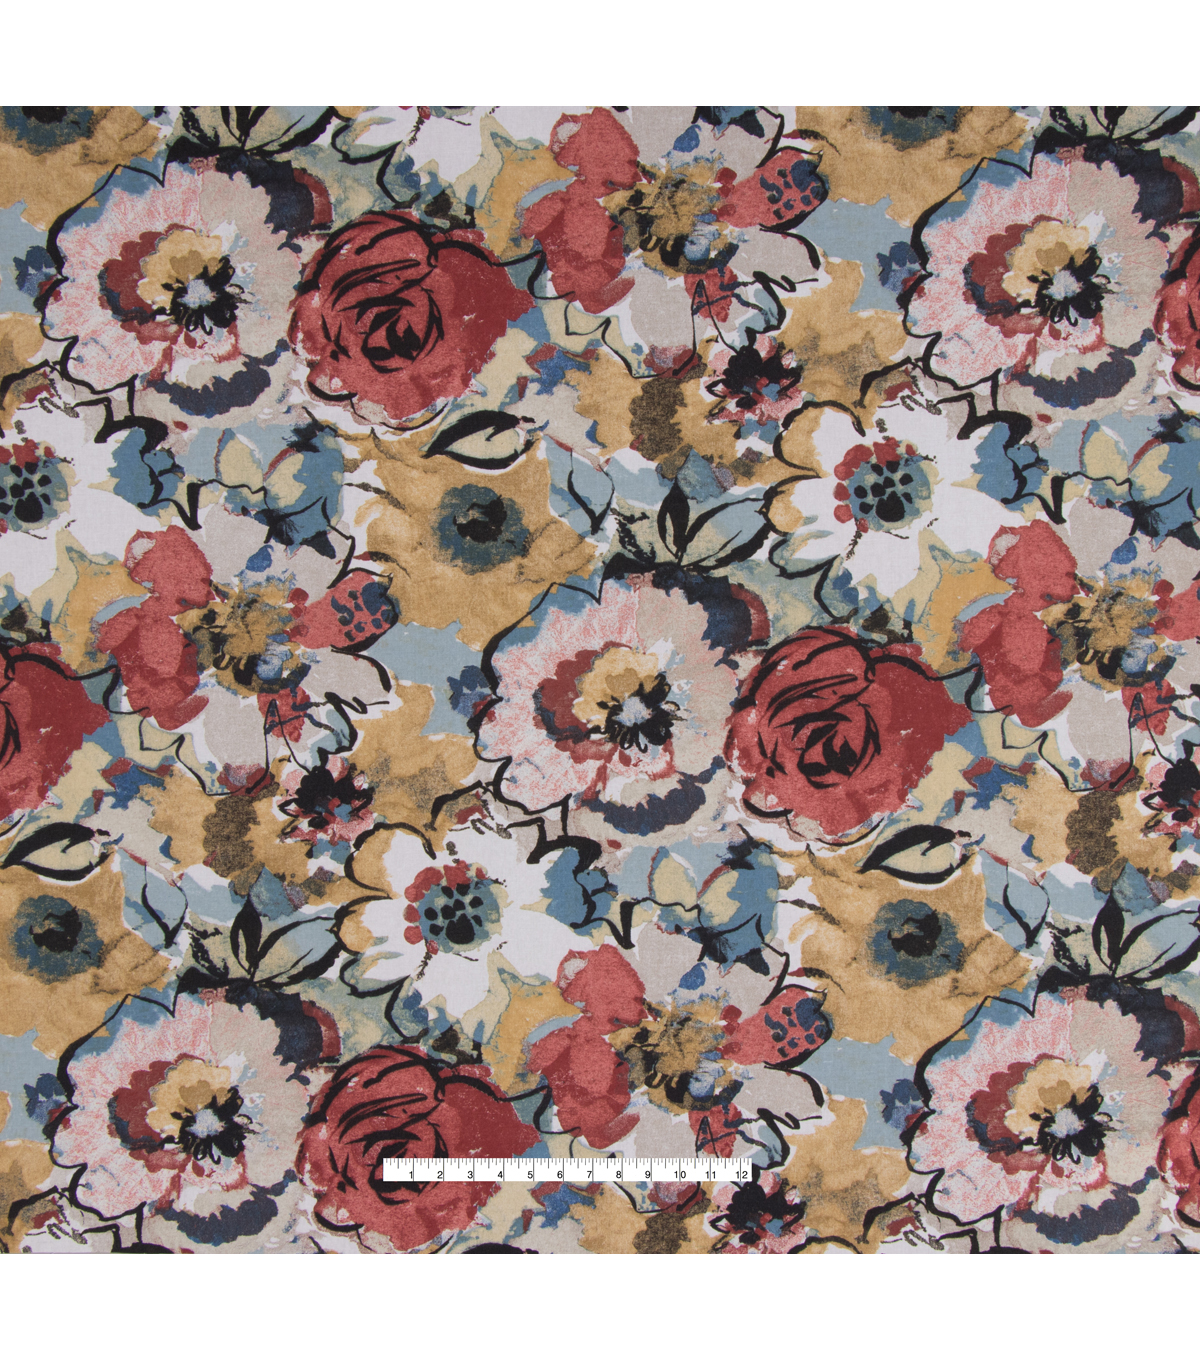 Home Essentials Lightweight Decor Fabric-Garrity Panorama Sonoma